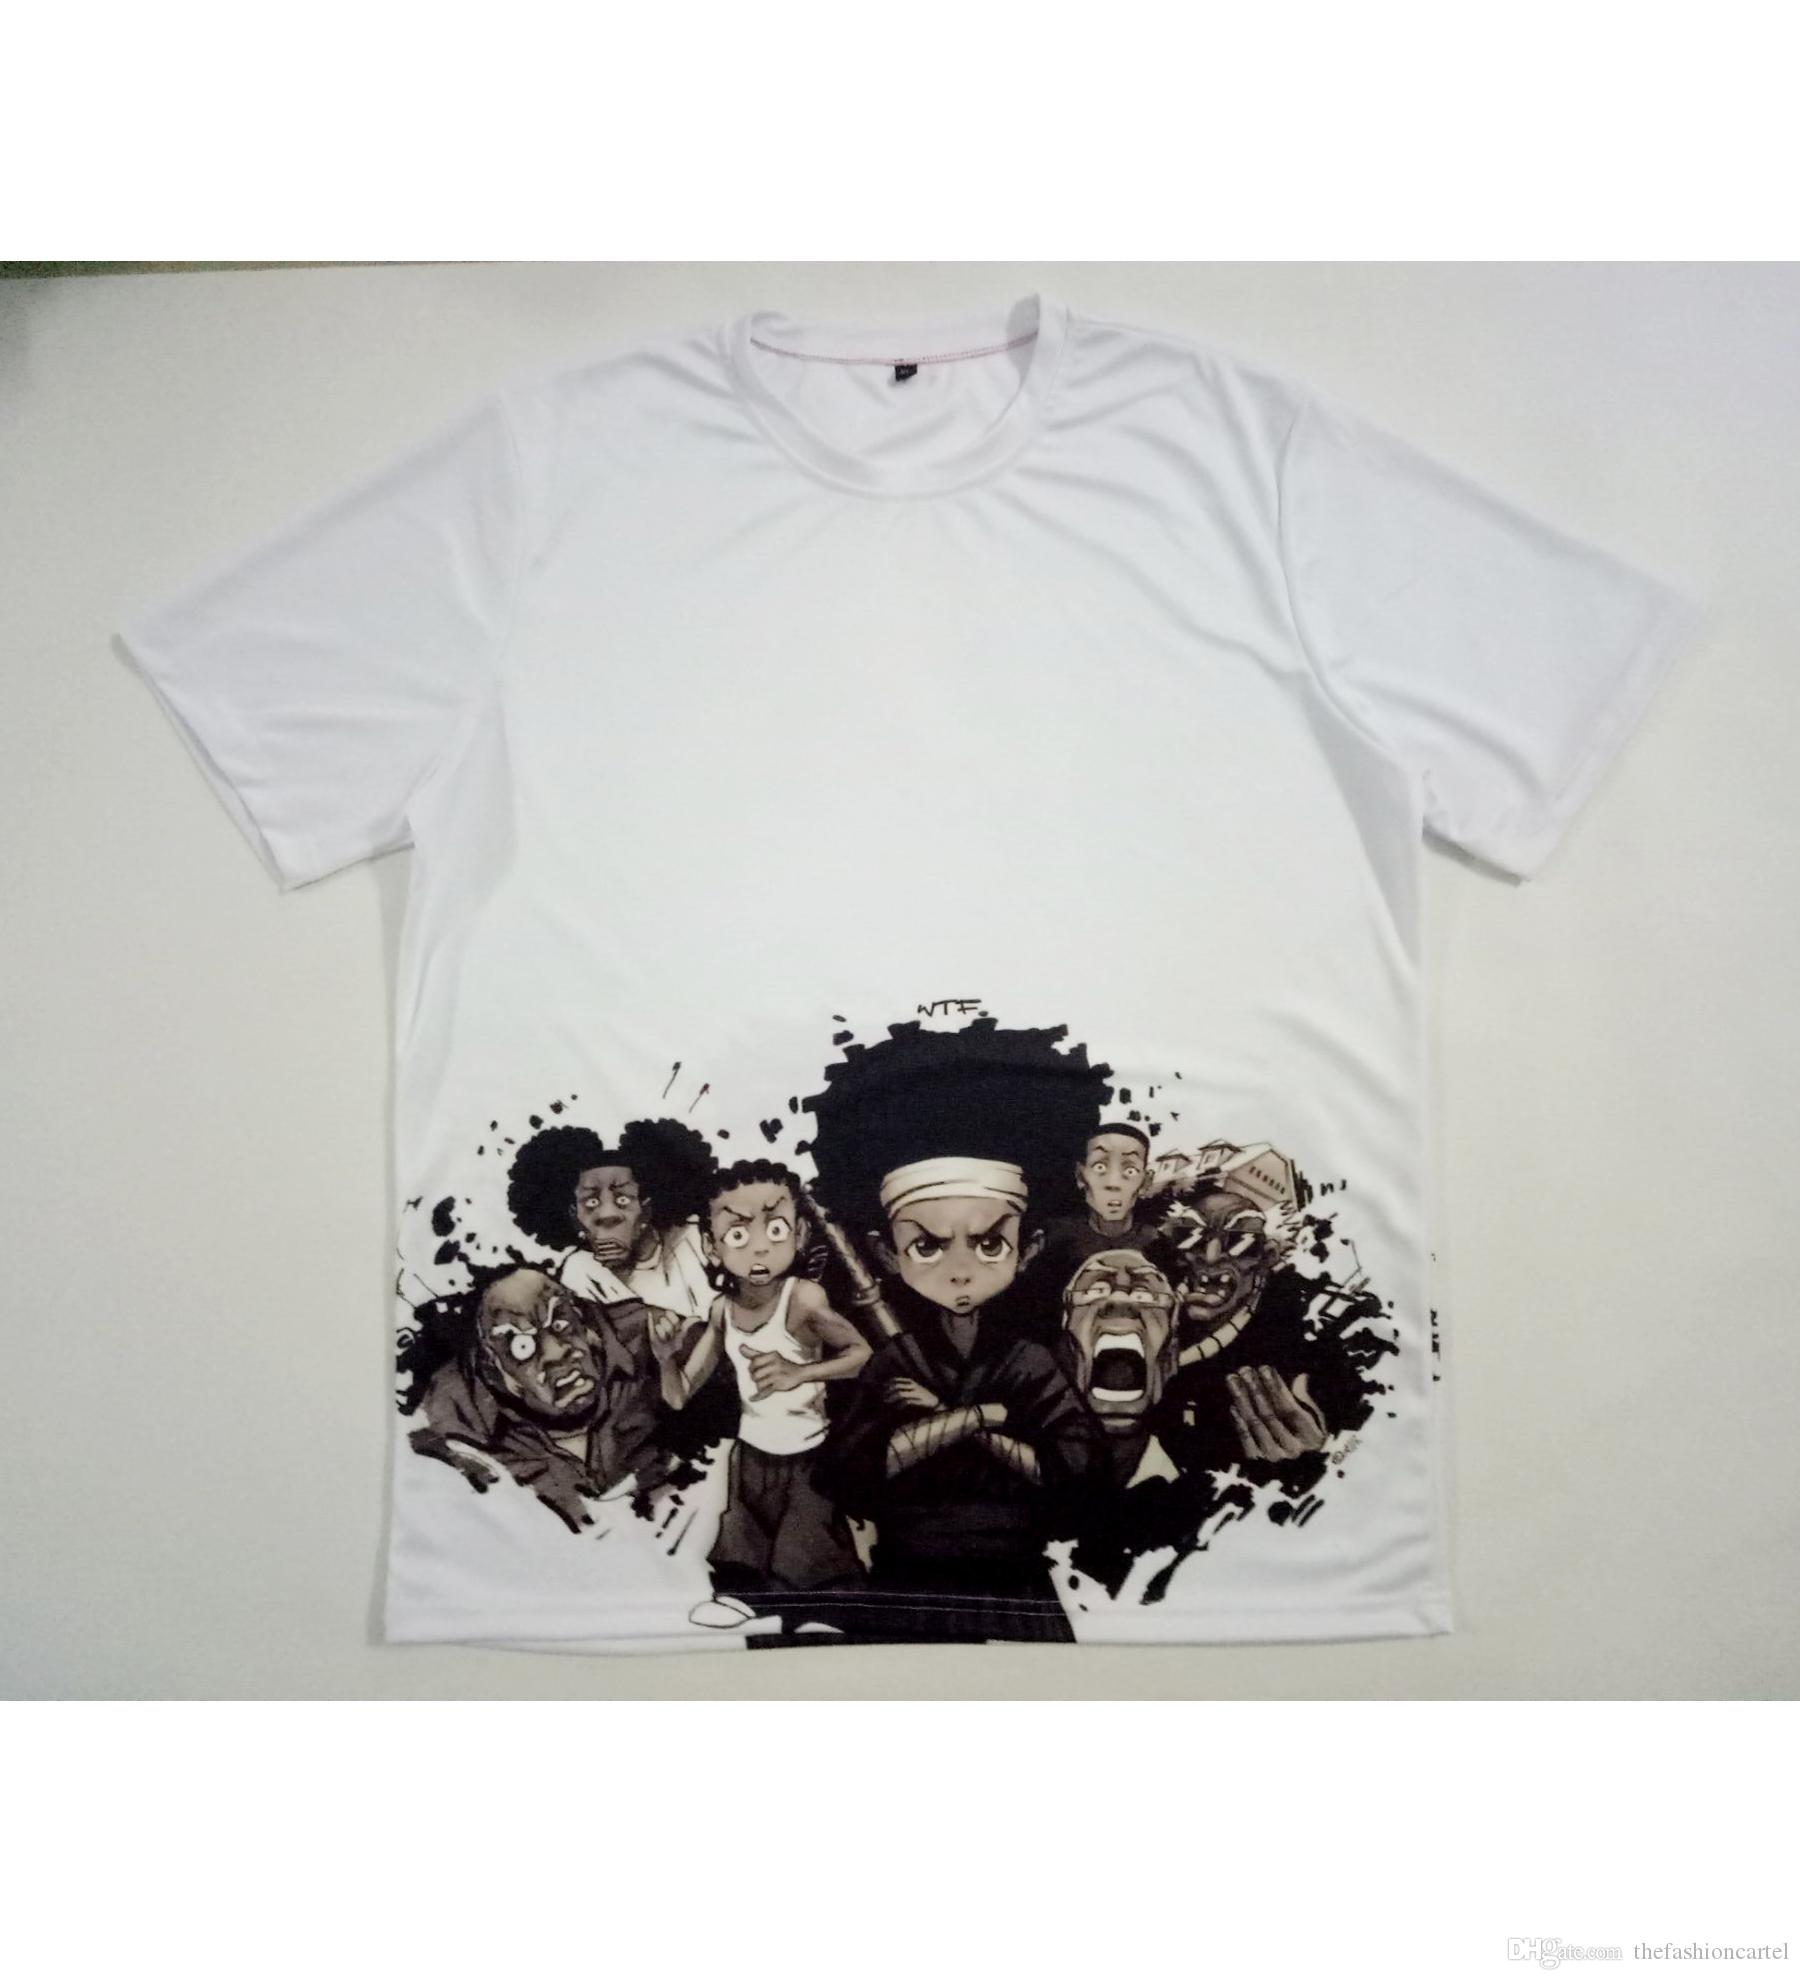 c96b4216 Sublimation Printing For T Shirts - DREAMWORKS